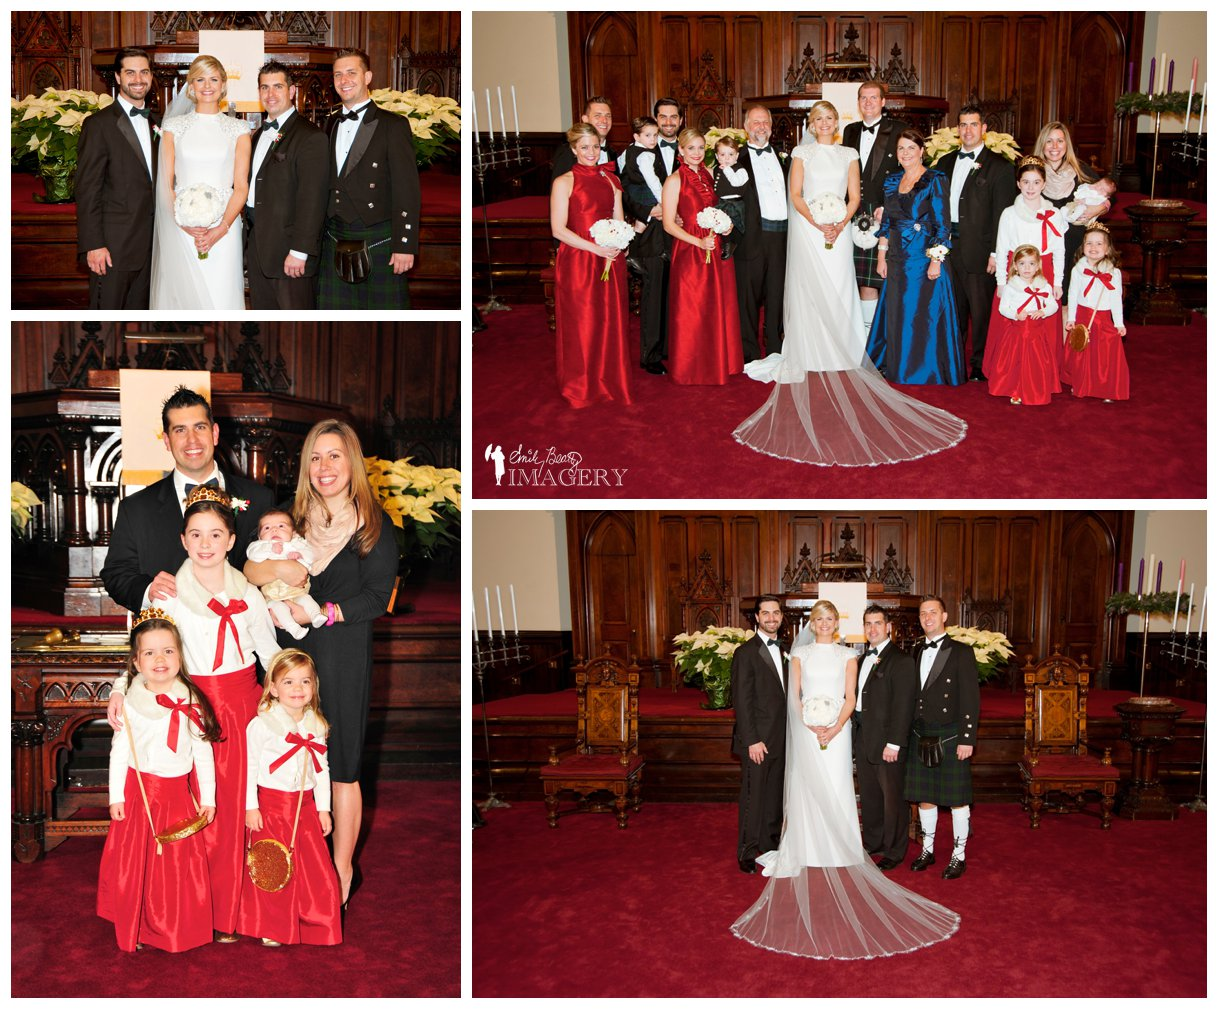 December, Christmas wedding in Cincinnati, Ohio by Emily Beatty Imagery.